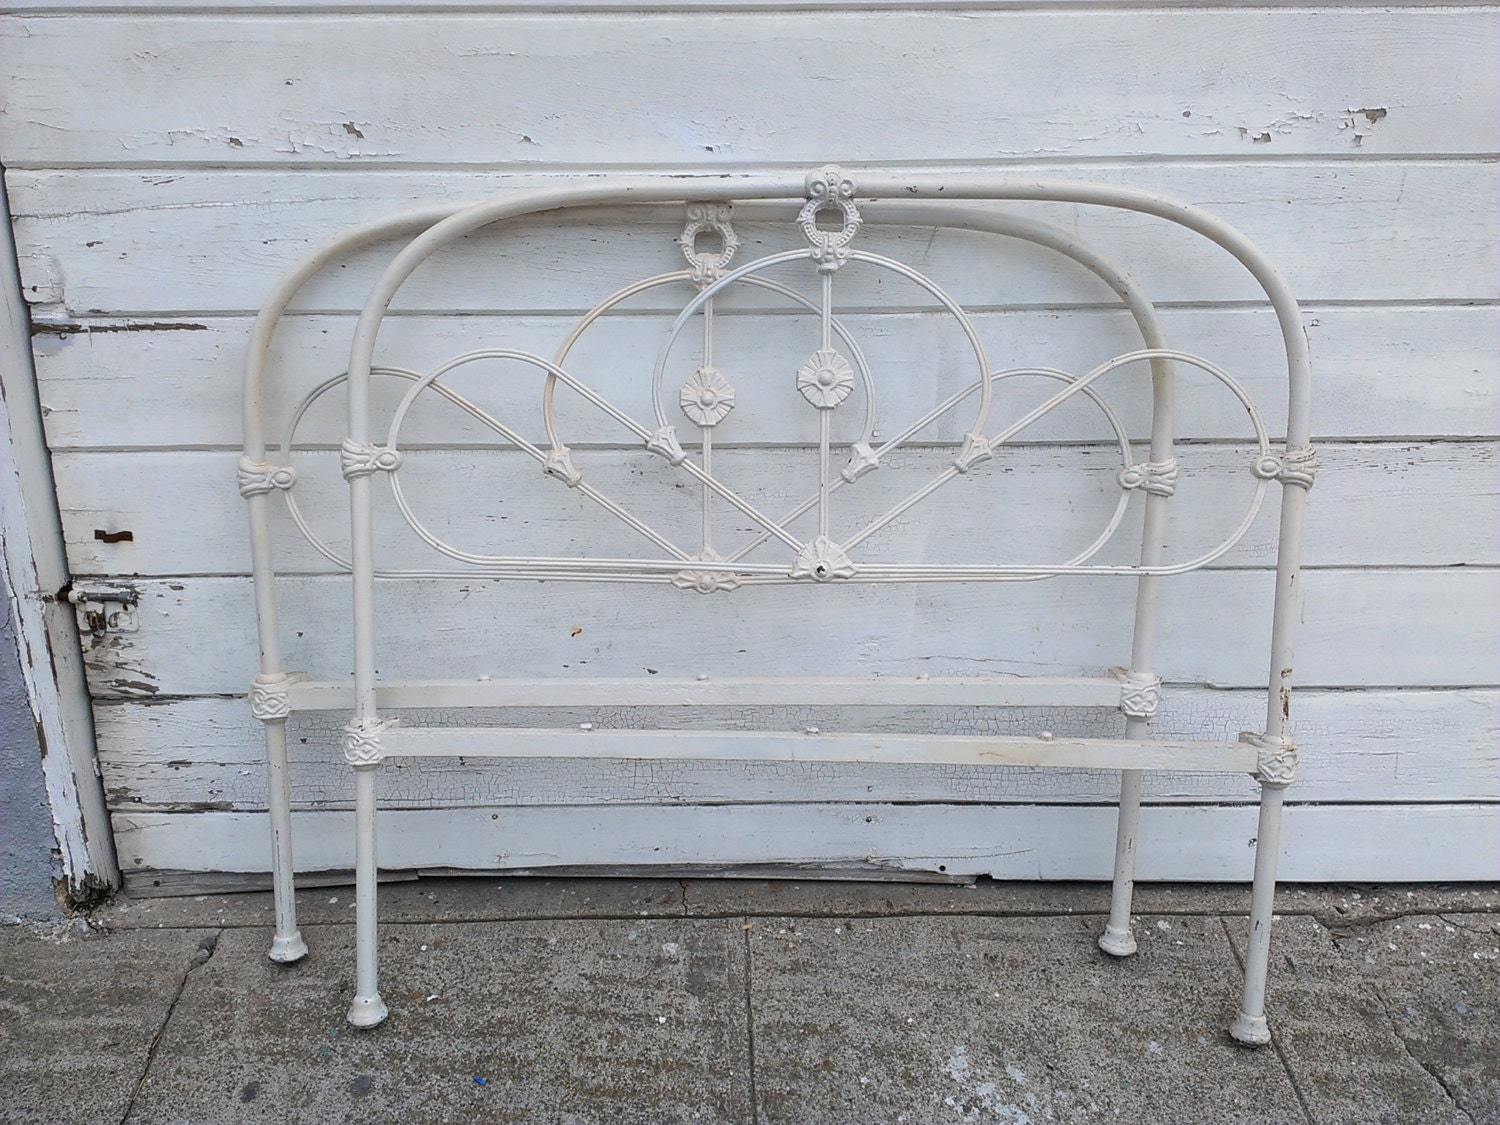 Antique iron bed rails - Unavailable Listing On Etsy